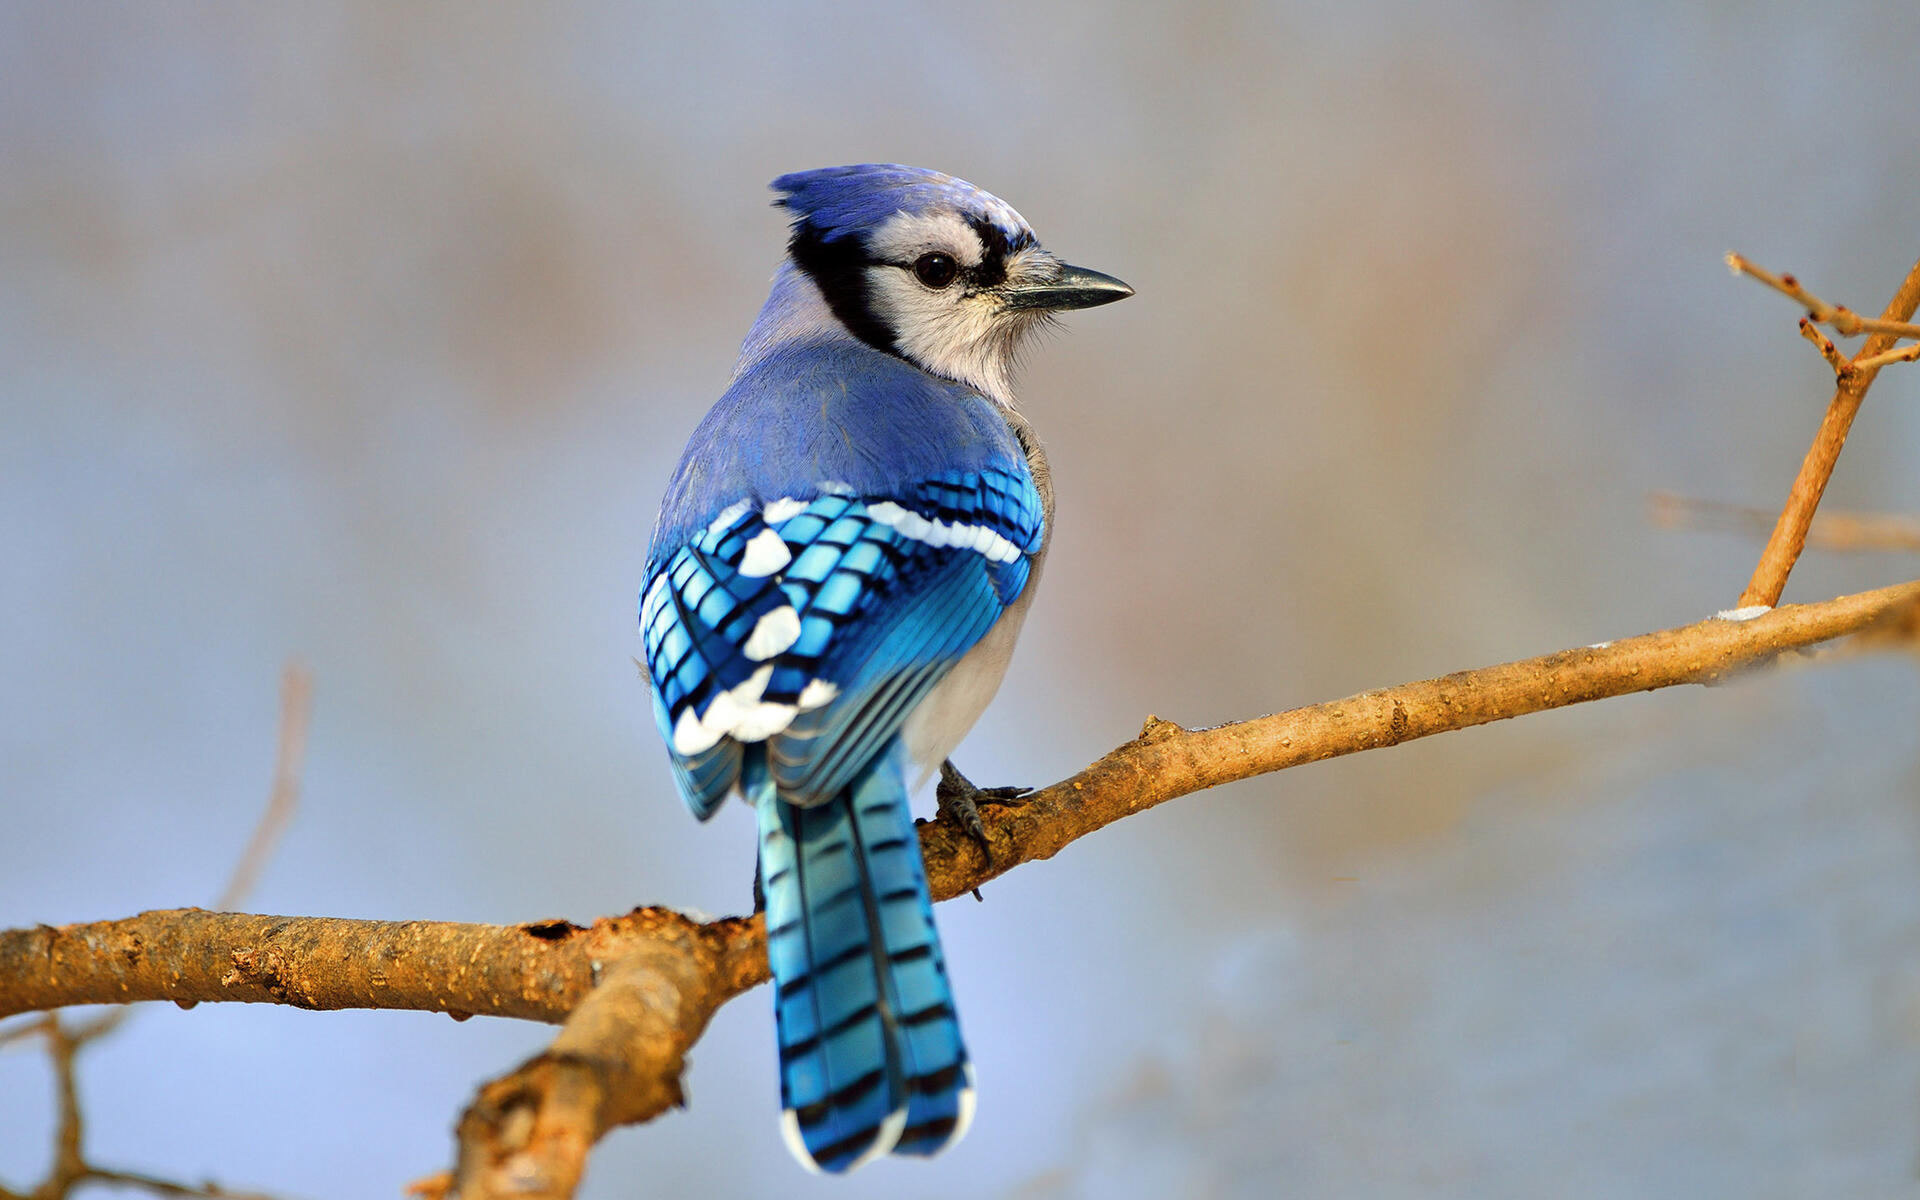 Blue jay audubon field guide Pictures of birds